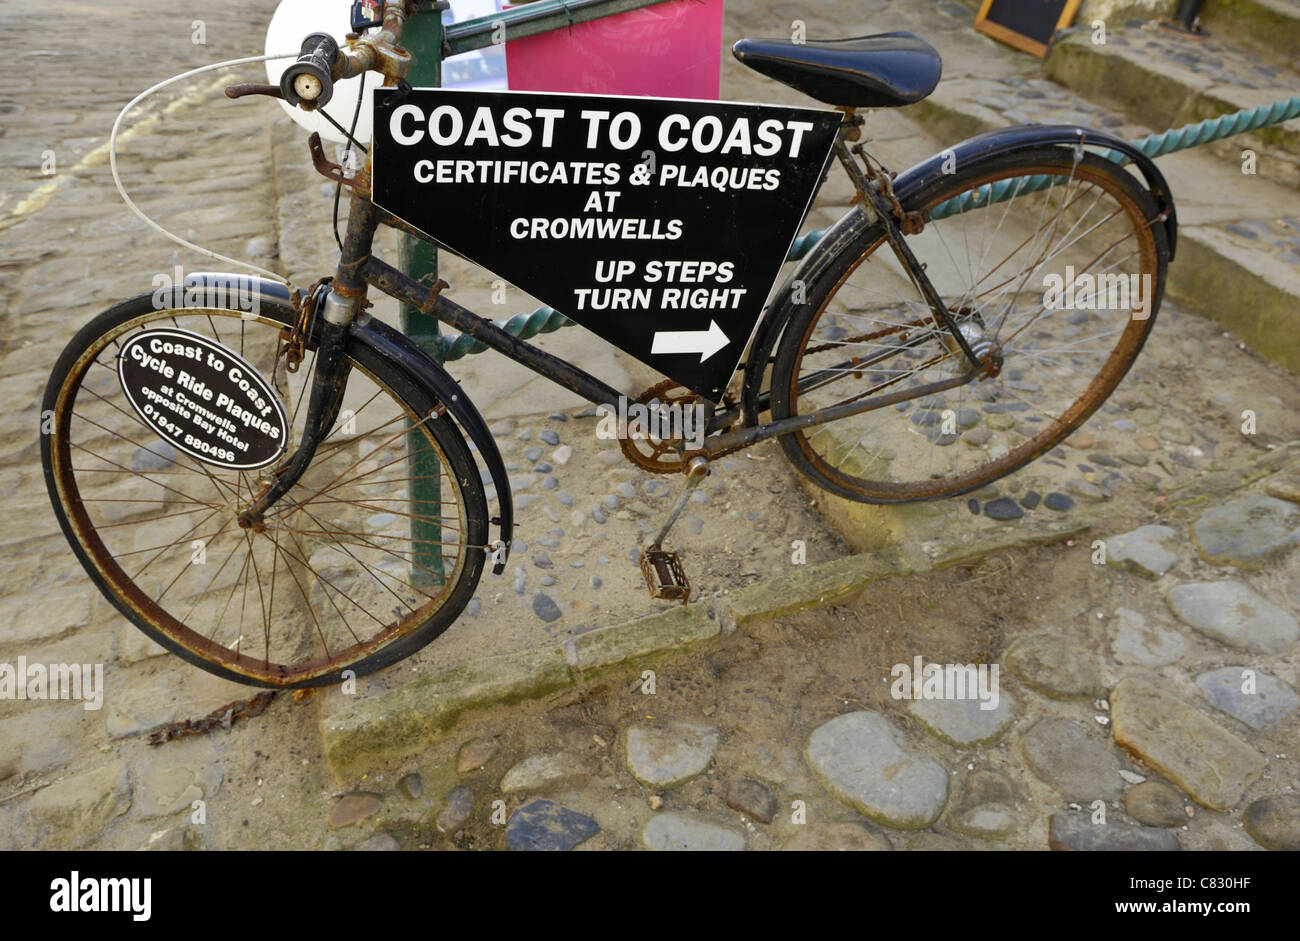 An old rusty black cycle advertising certificates for the completion of the Coast to Coast from St Bees to Robin Stock Photo